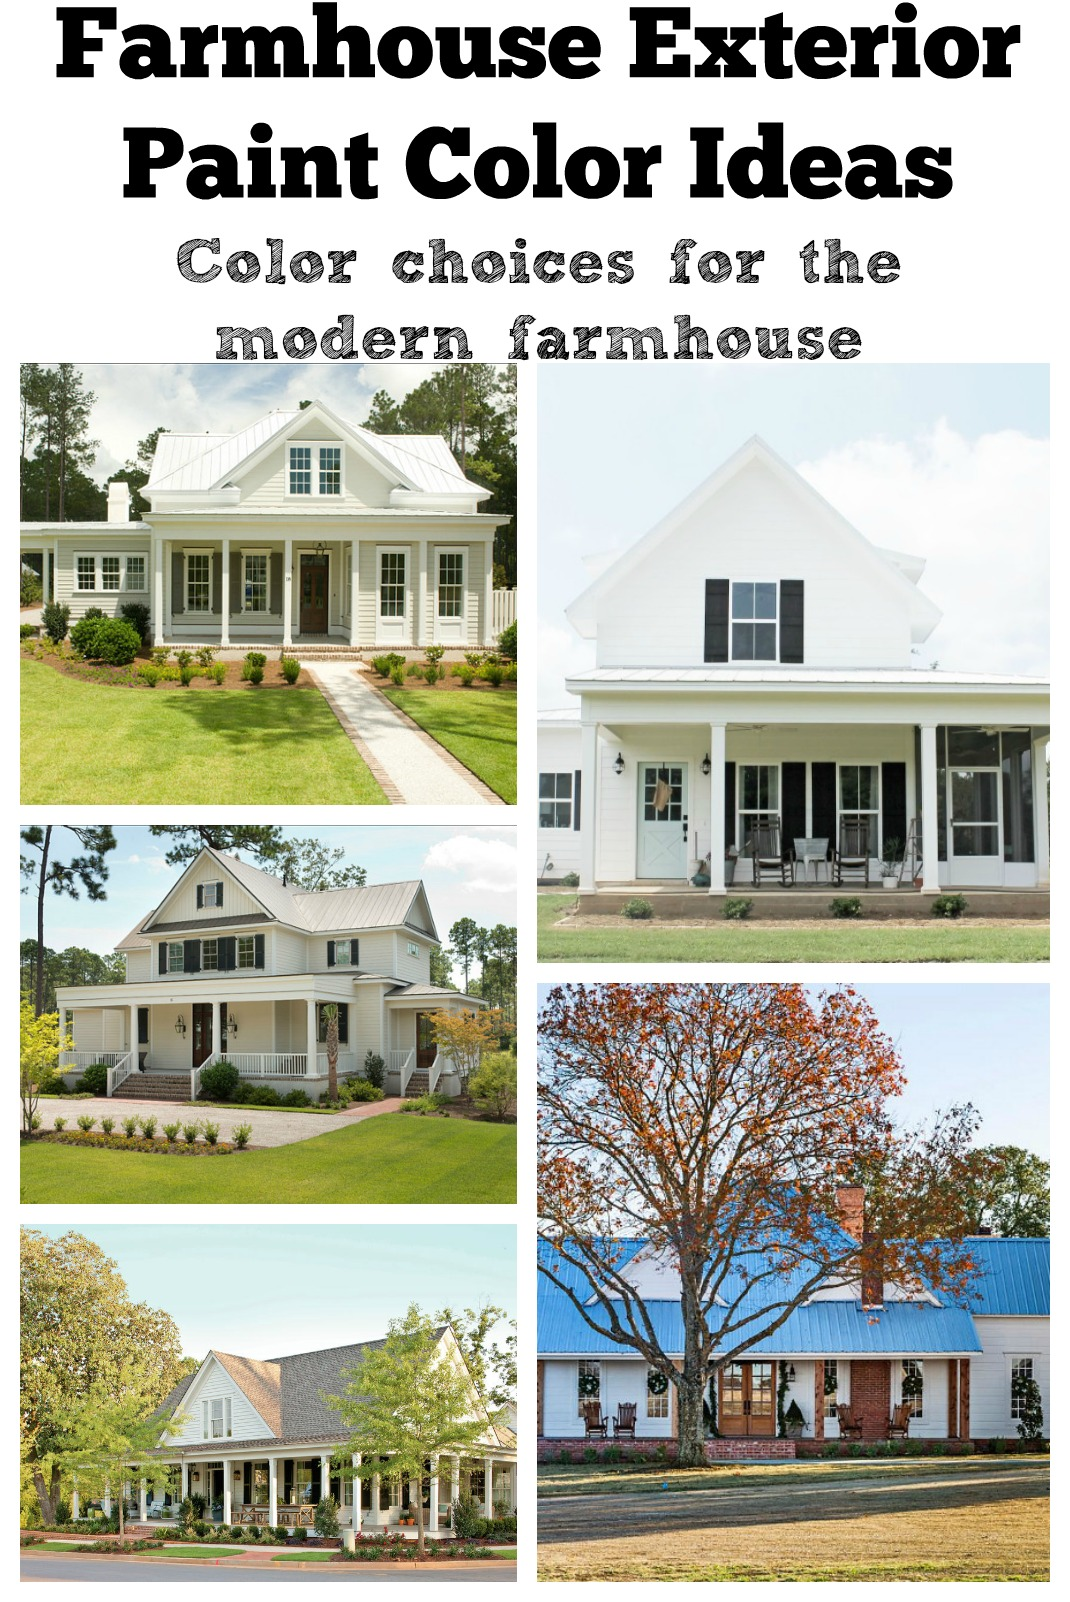 Exterior Color Choices Farmhouse Exterior Paint Color Ideas. Exterior Color Choices for the modern farmhouse.